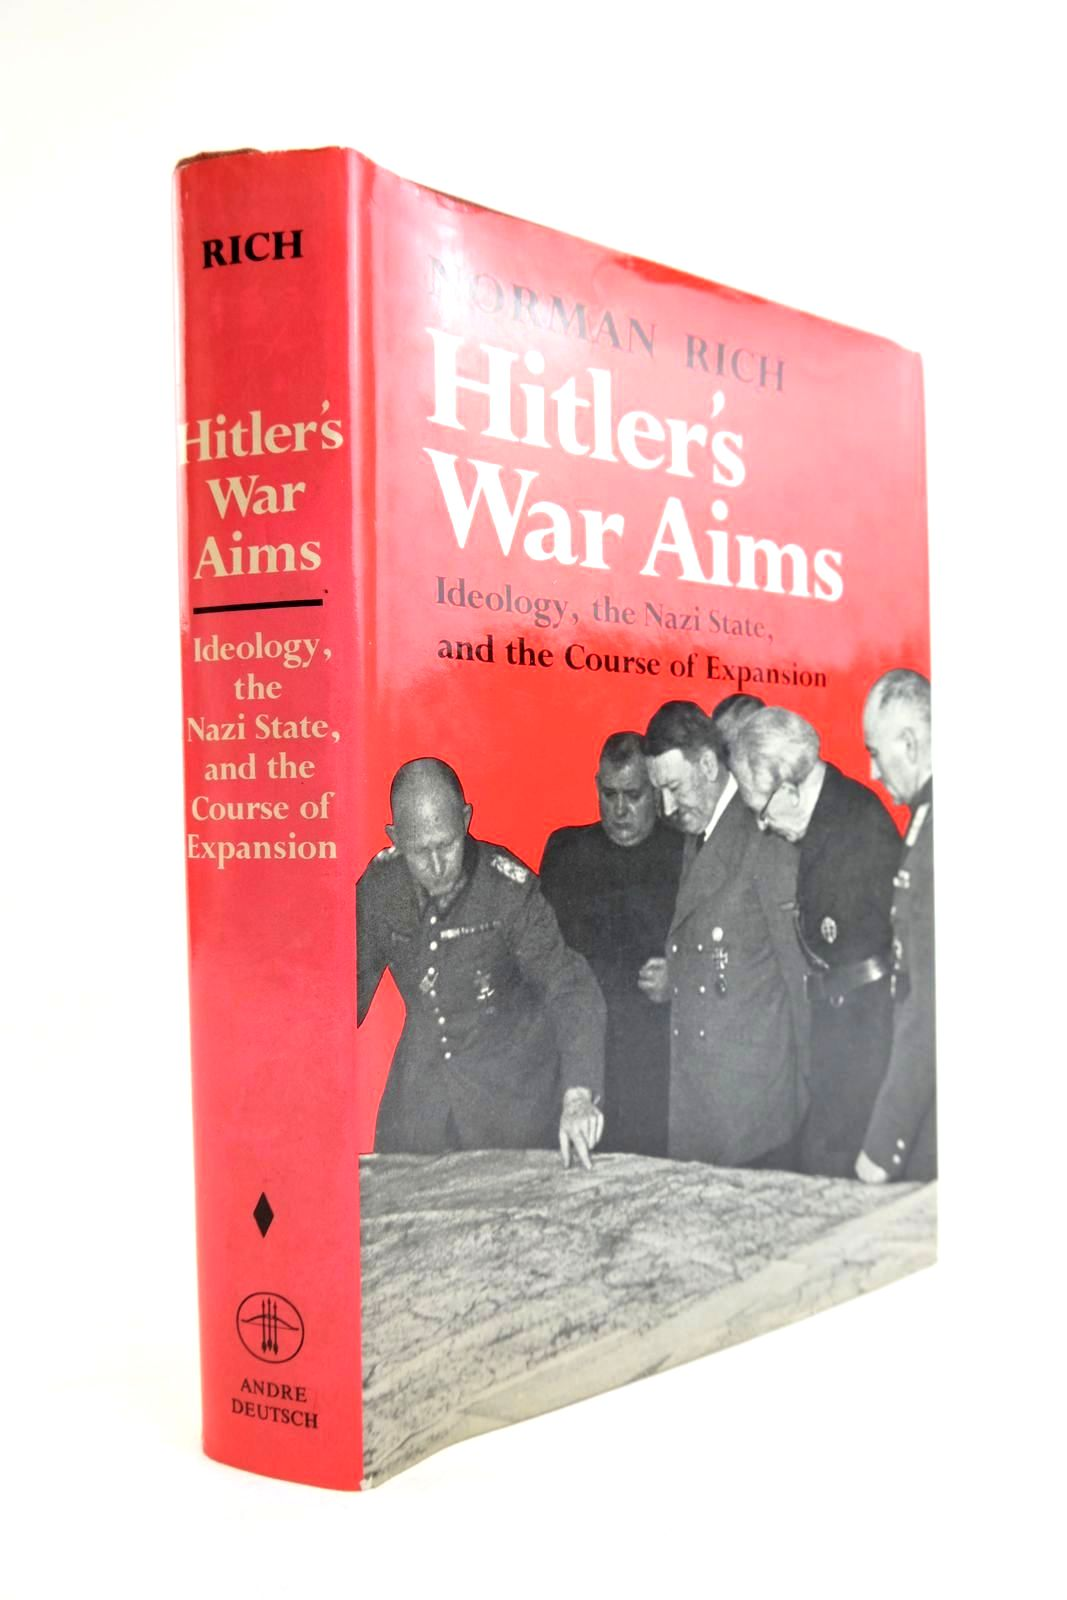 Photo of HITLER'S WAR AIMS written by Rich, Norman published by Andre Deutsch (STOCK CODE: 2133428)  for sale by Stella & Rose's Books